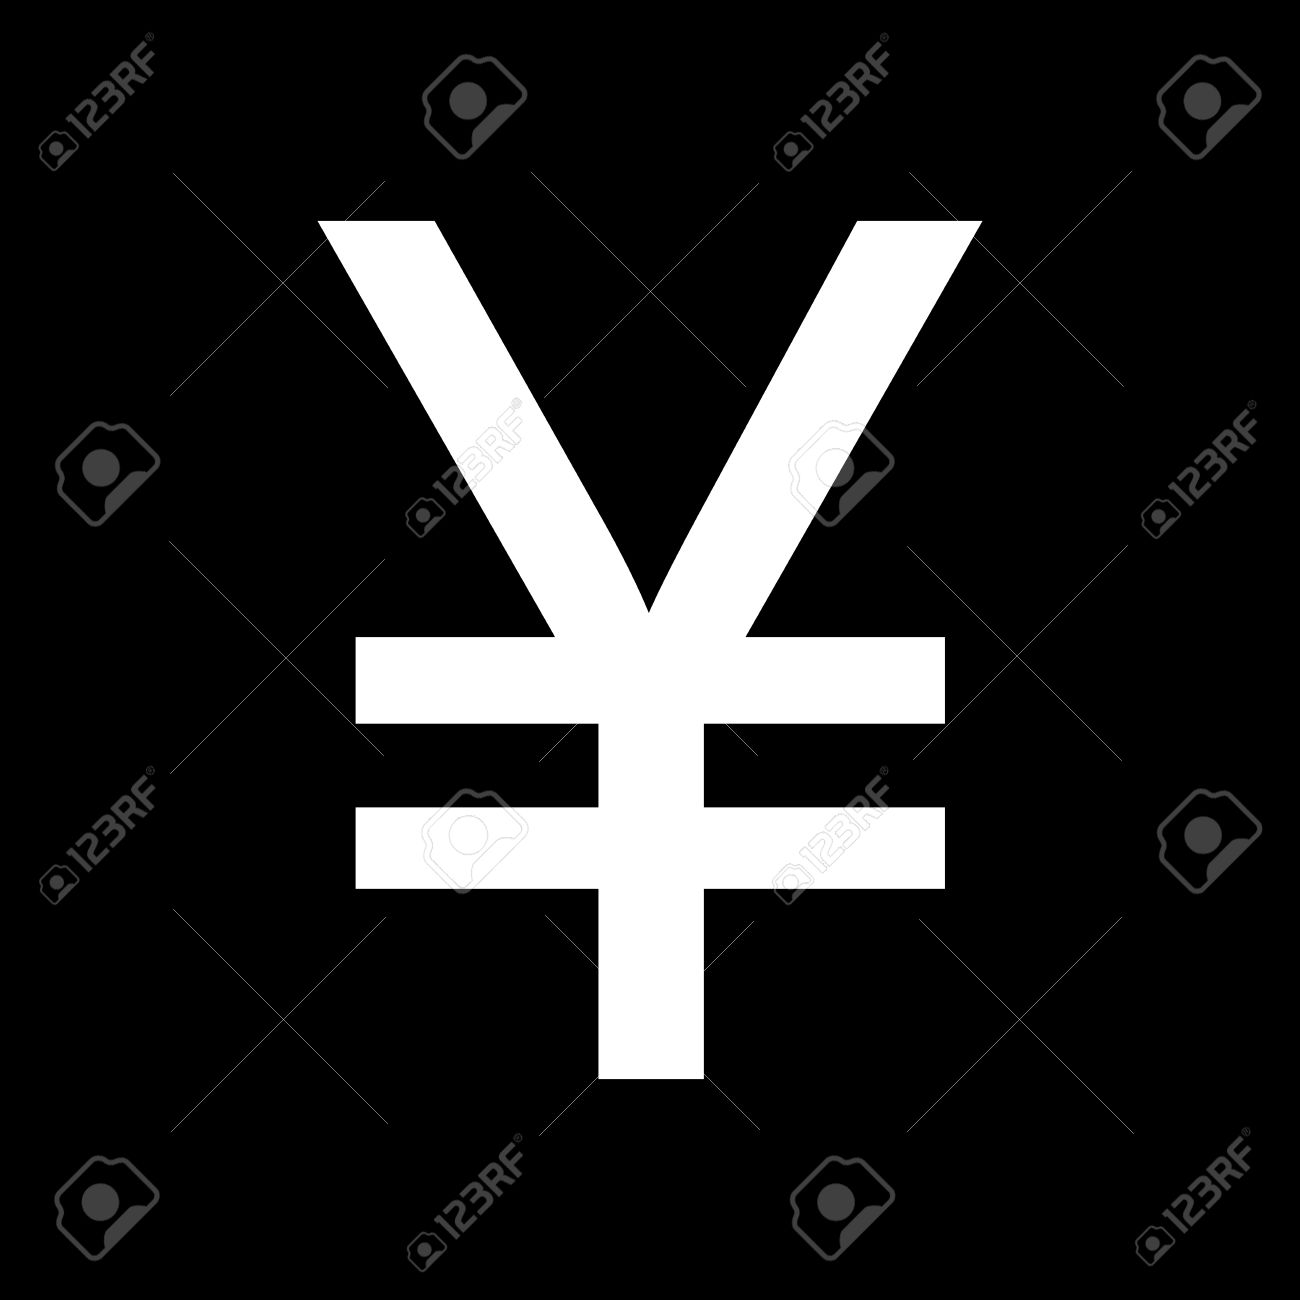 Japanese yen or chinese yuan currency symbol royalty free cliparts japanese yen or chinese yuan currency symbol stock vector 62127595 buycottarizona Gallery